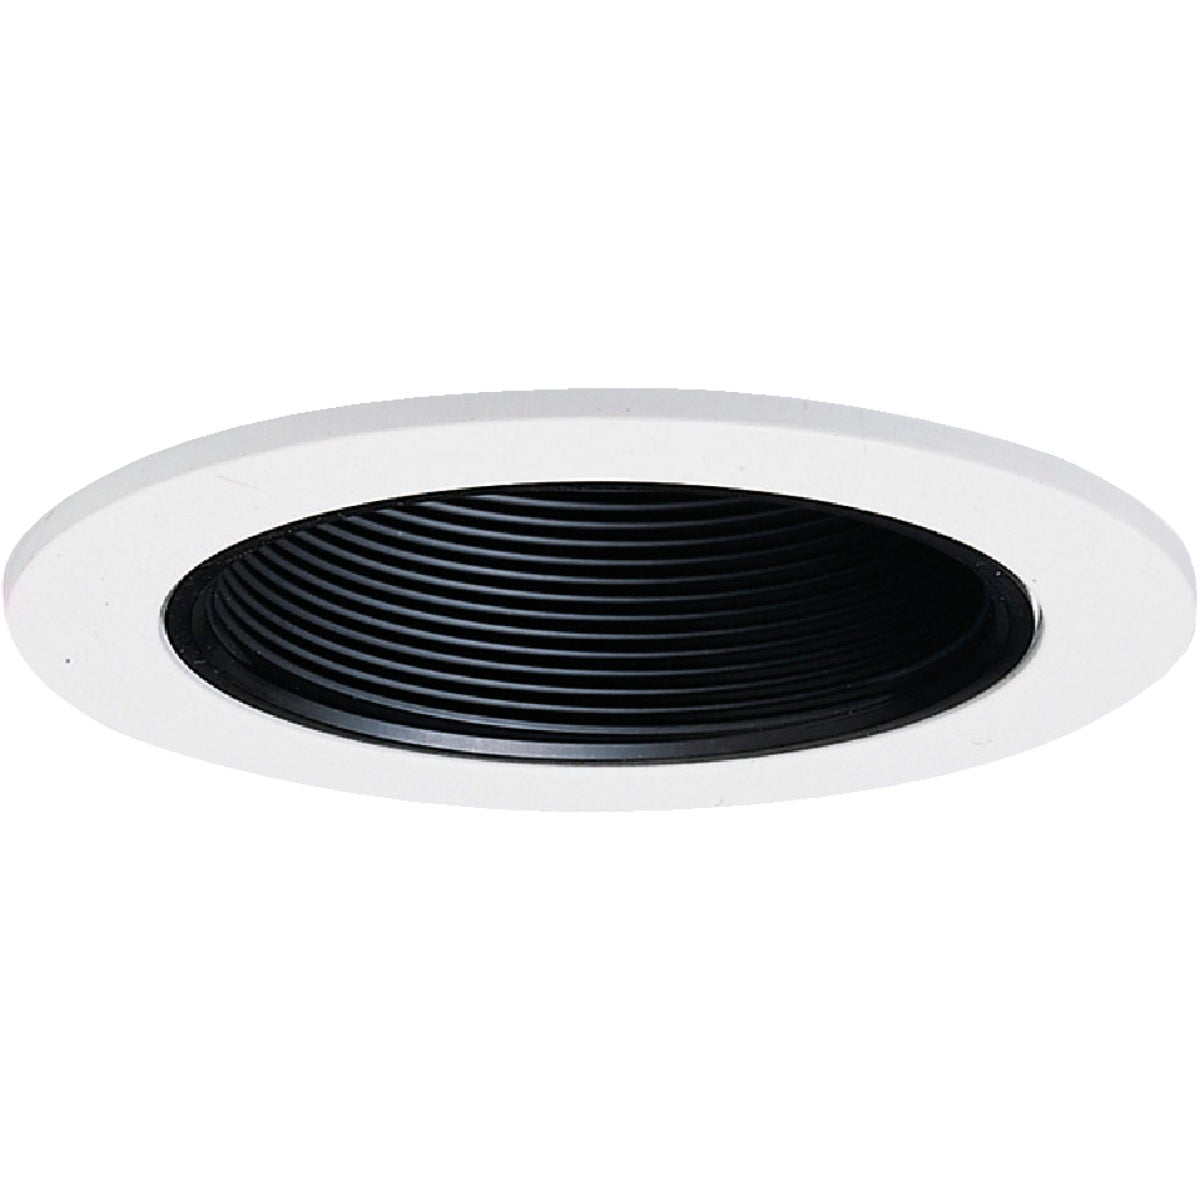 "4"" BLK/WHT TRIM BAFFLE - 993P by Cooper Lighting"